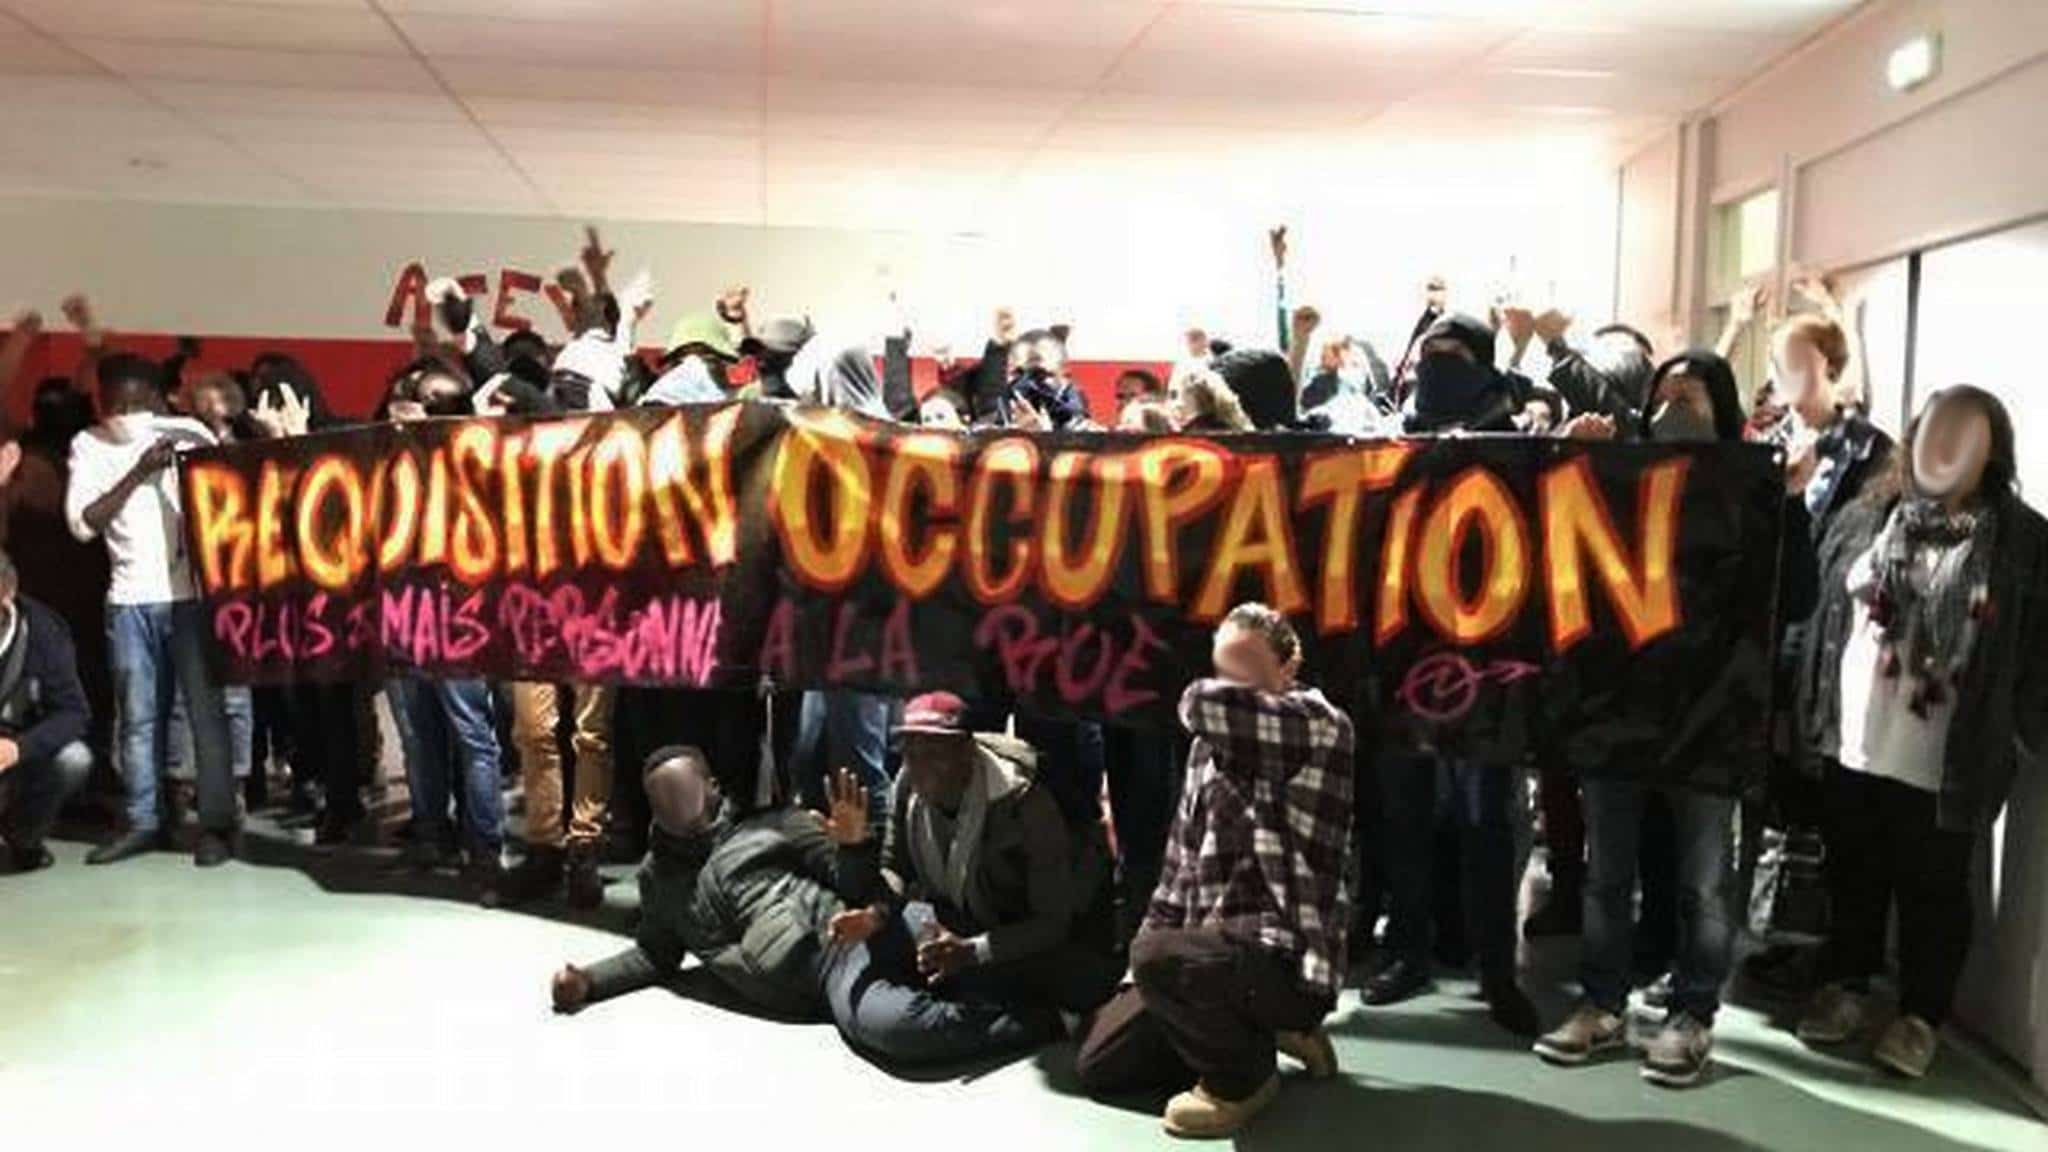 nantes_occupation